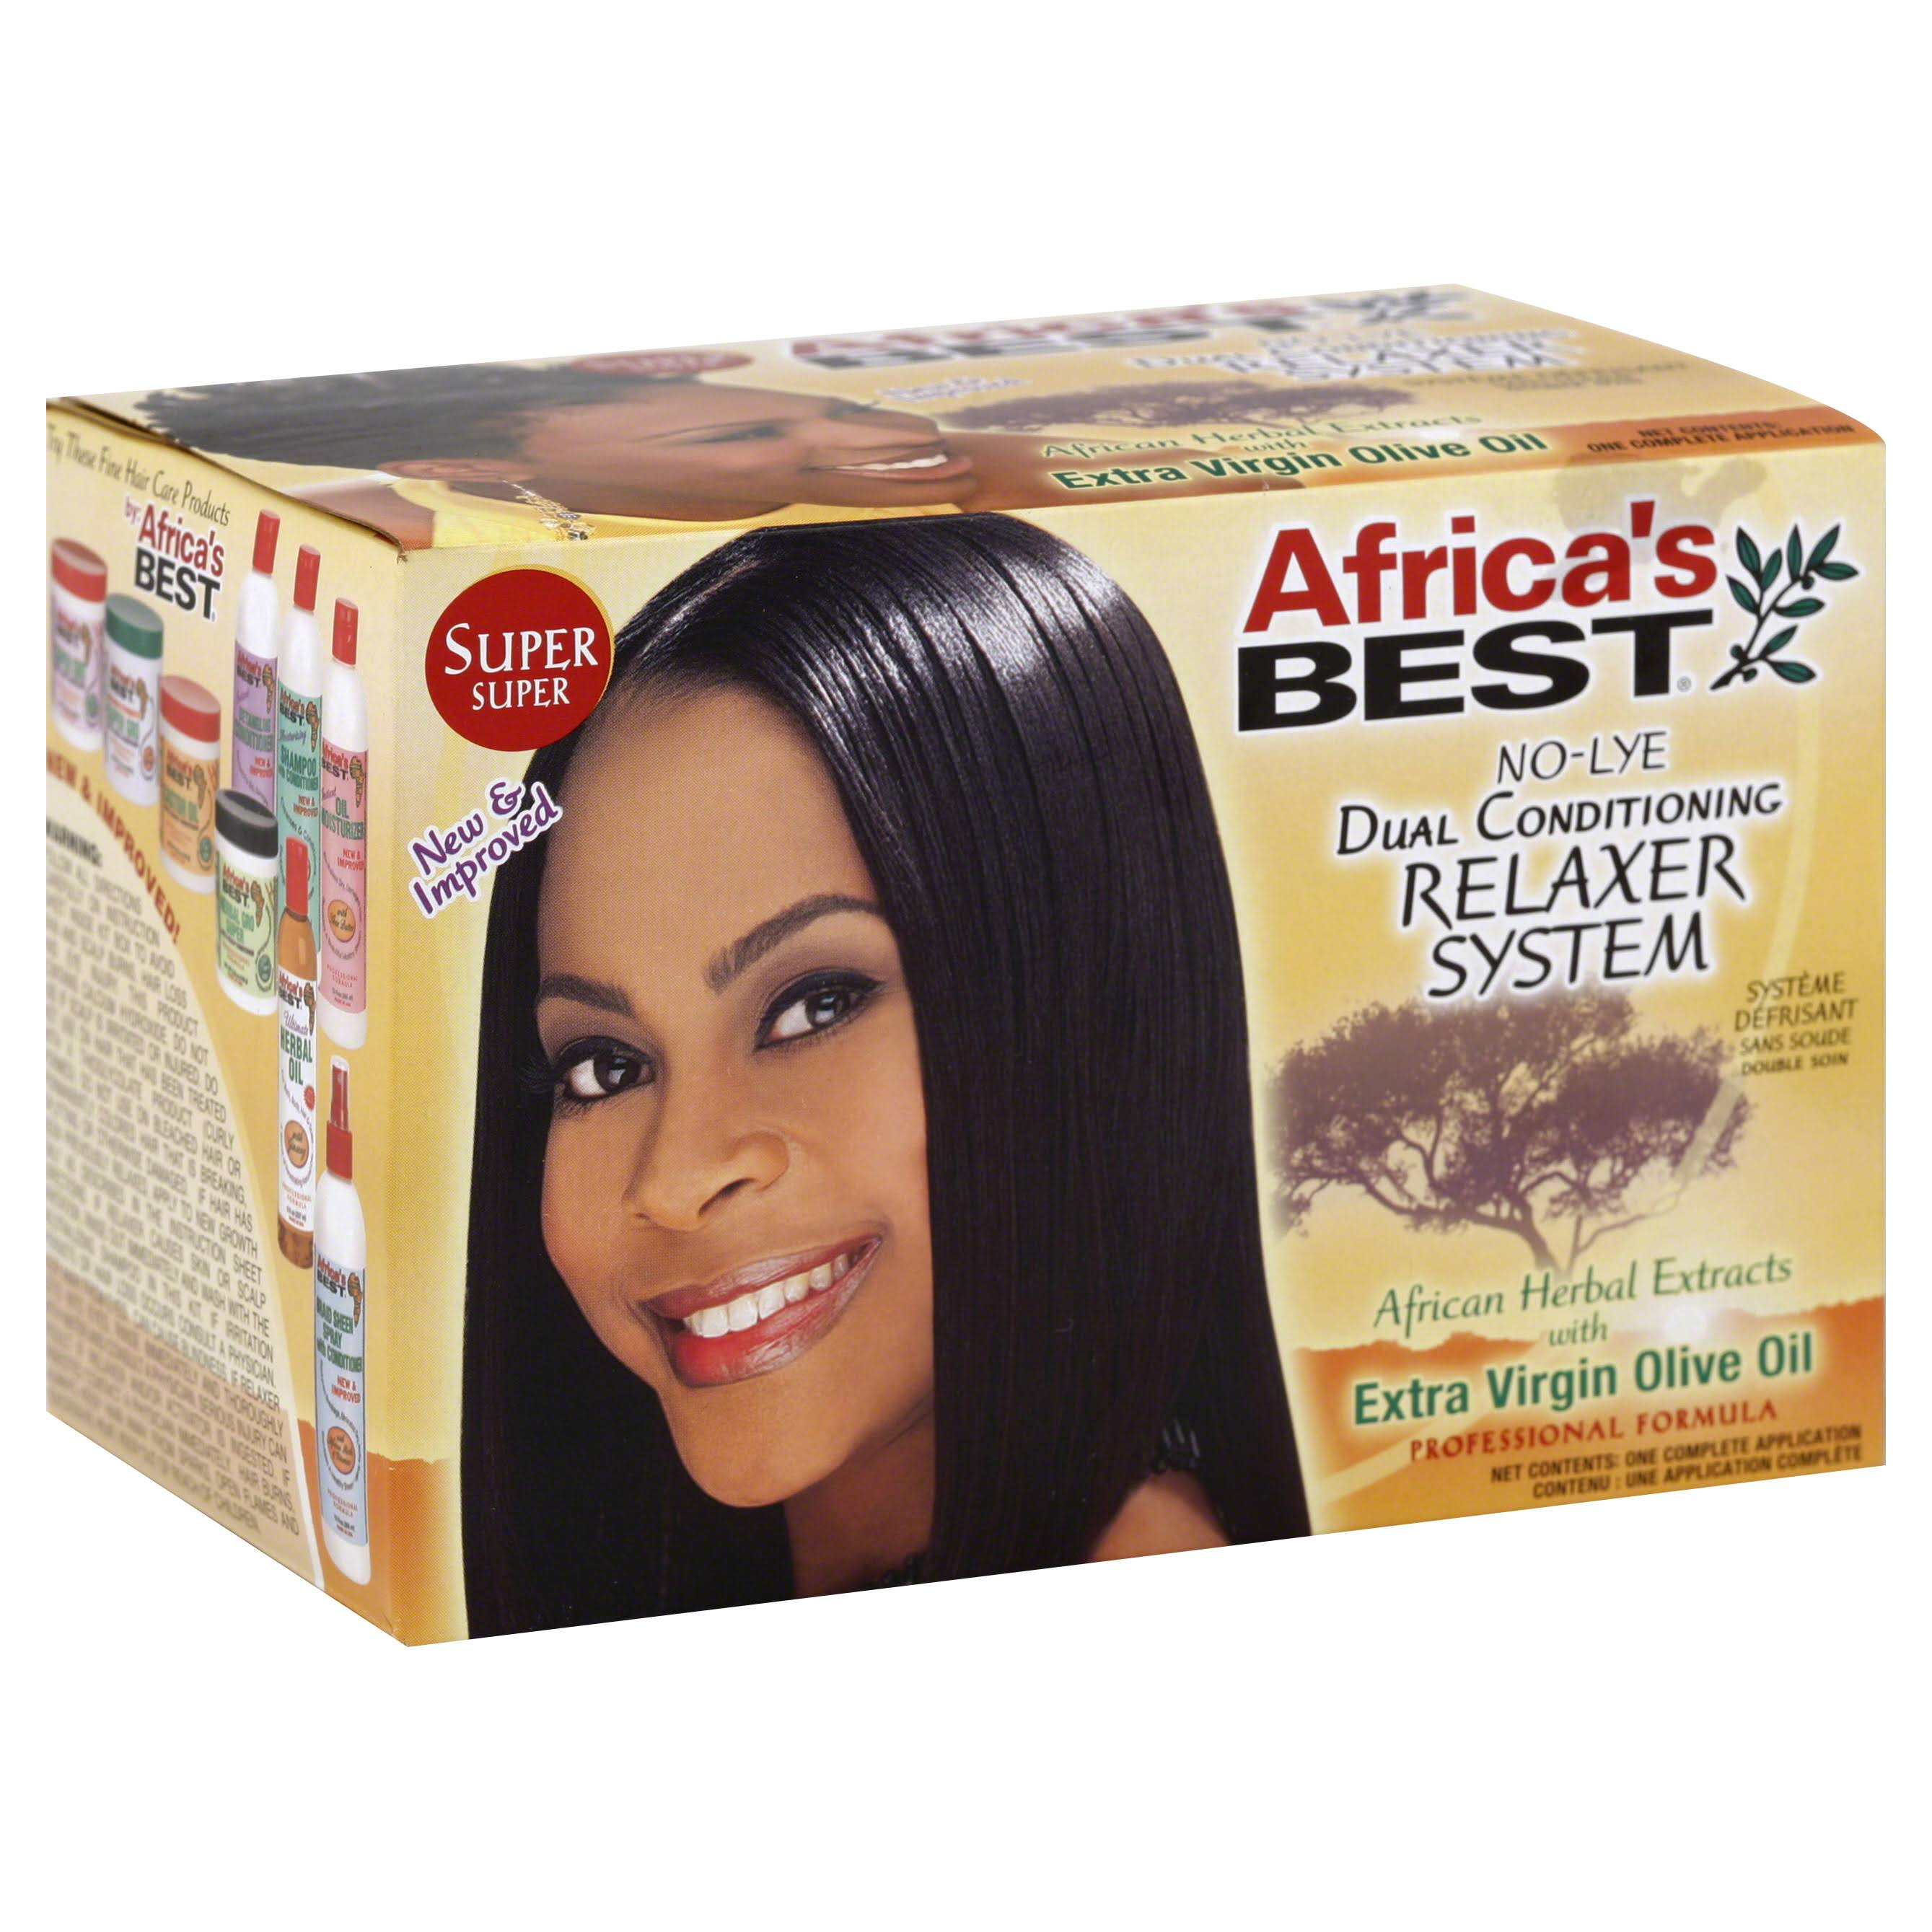 Africa's Best Dual Conditioning No-Lye Hair Relaxer System